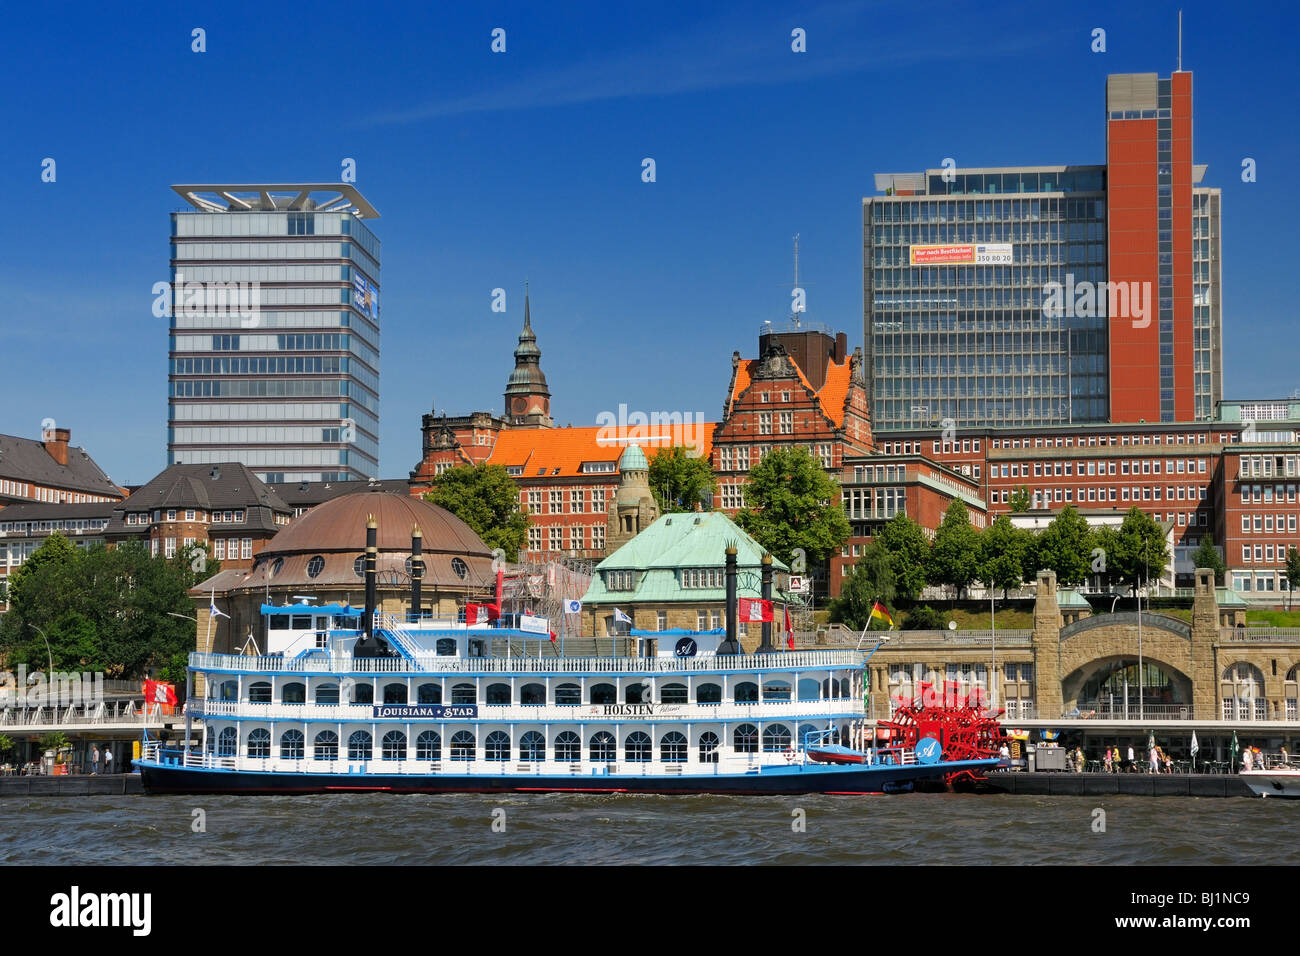 The wheel of Mississippi style riverboat used to sightseeing tours at the harbor in Hamburg, Germany. - Stock Image